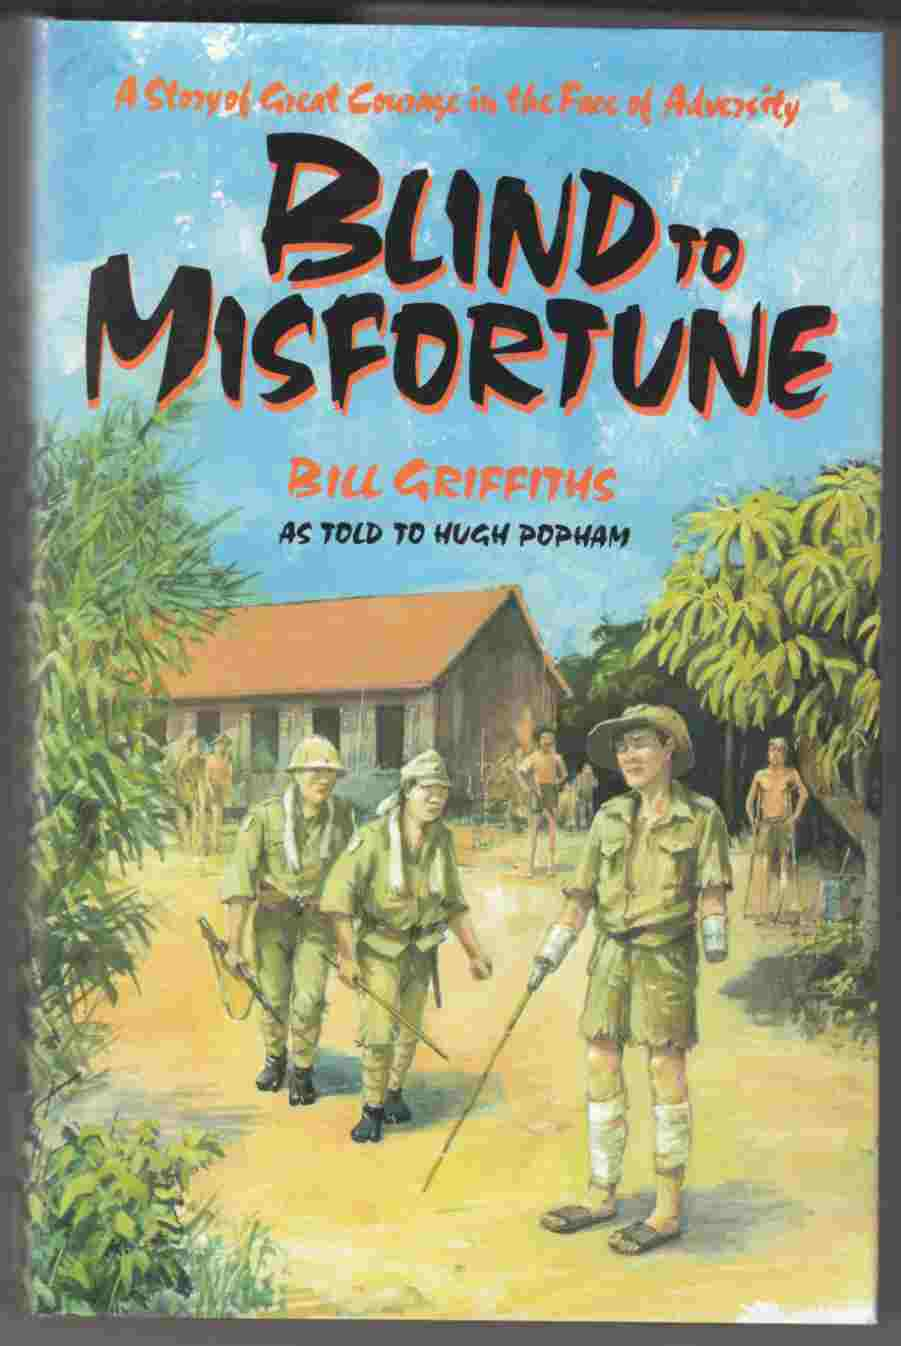 Image for Blind to Misfortune A Story of Great Courage in the Face of Adversity